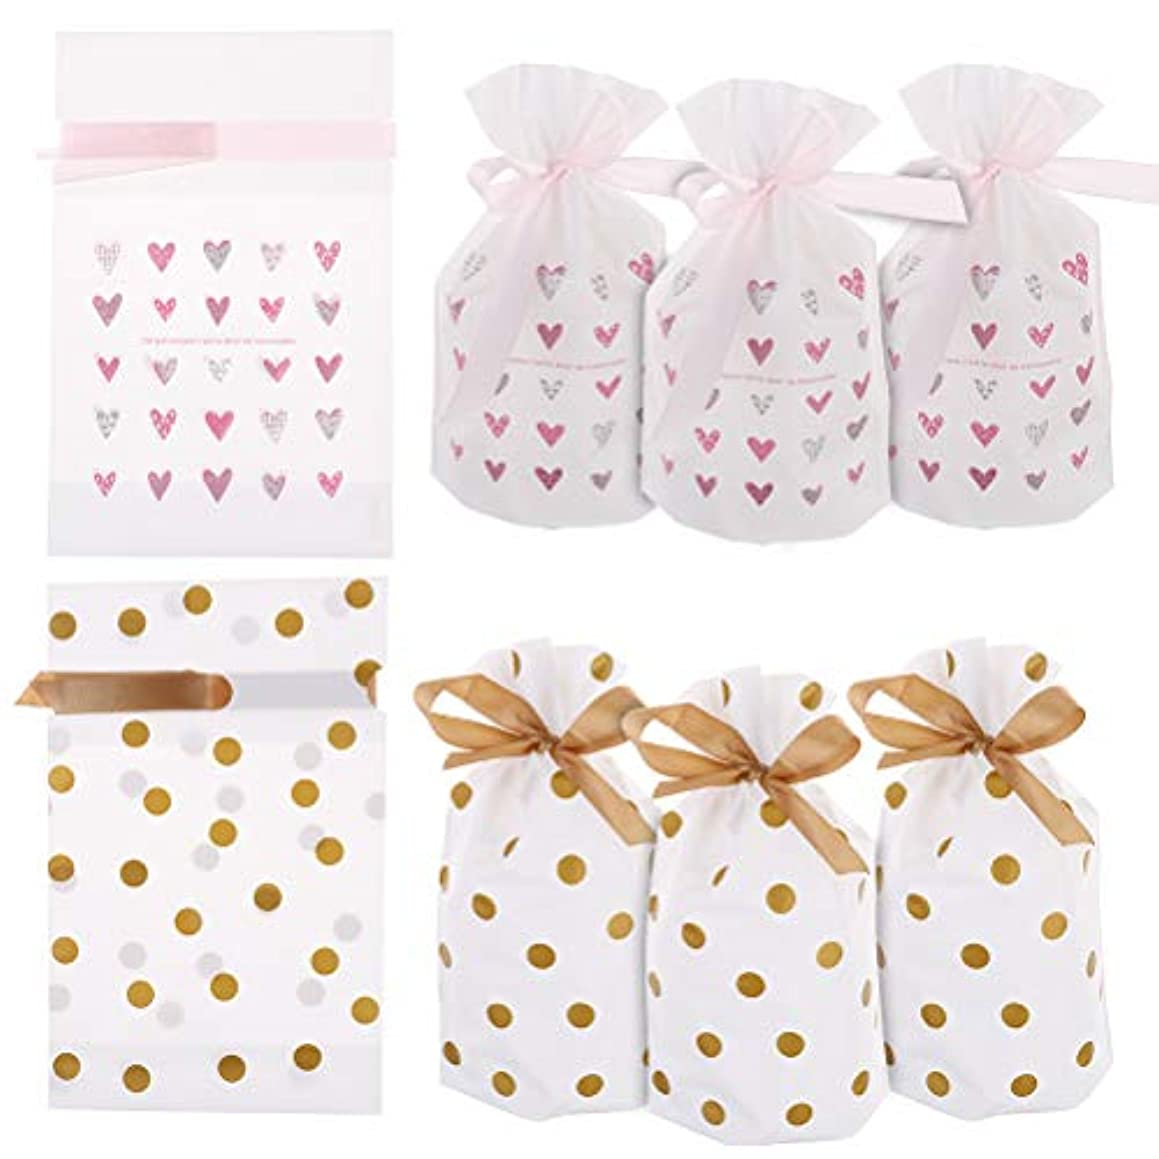 Party Favor Gift Drawstring Bags Set, 20 Pcs Candy Treat Bags Drawstring Plastic Cookie Chocolate Gift Bags Wrapping Package for Christmas Wedding Party Birthday Holiday - 9.05 x 5.9 x 2.75 Inches